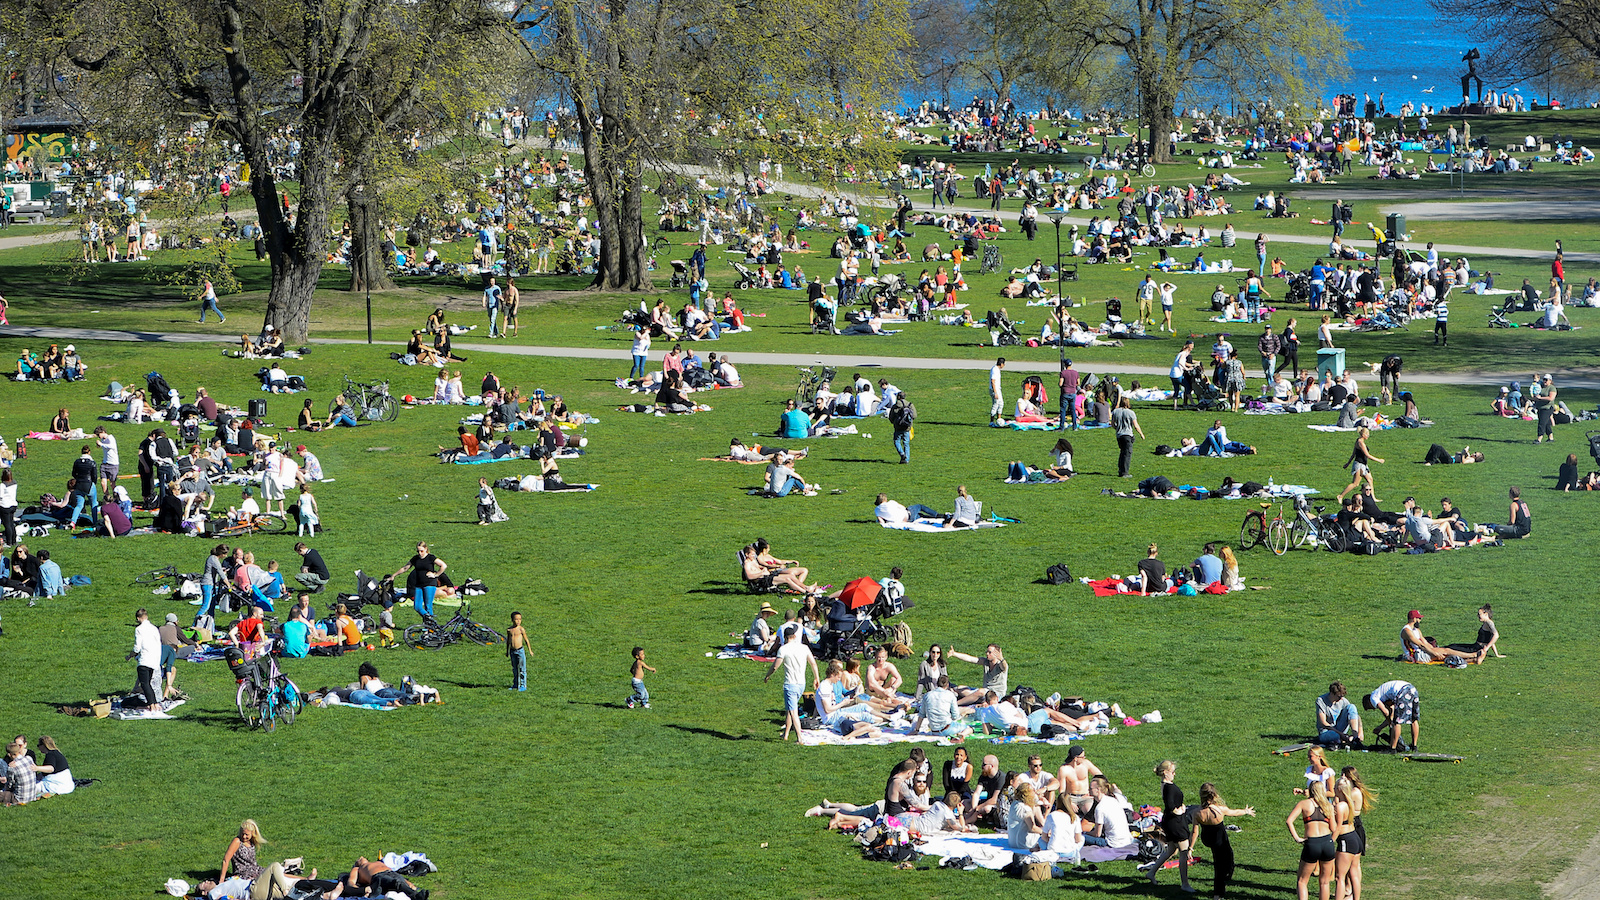 Crowds sun themselves in a park